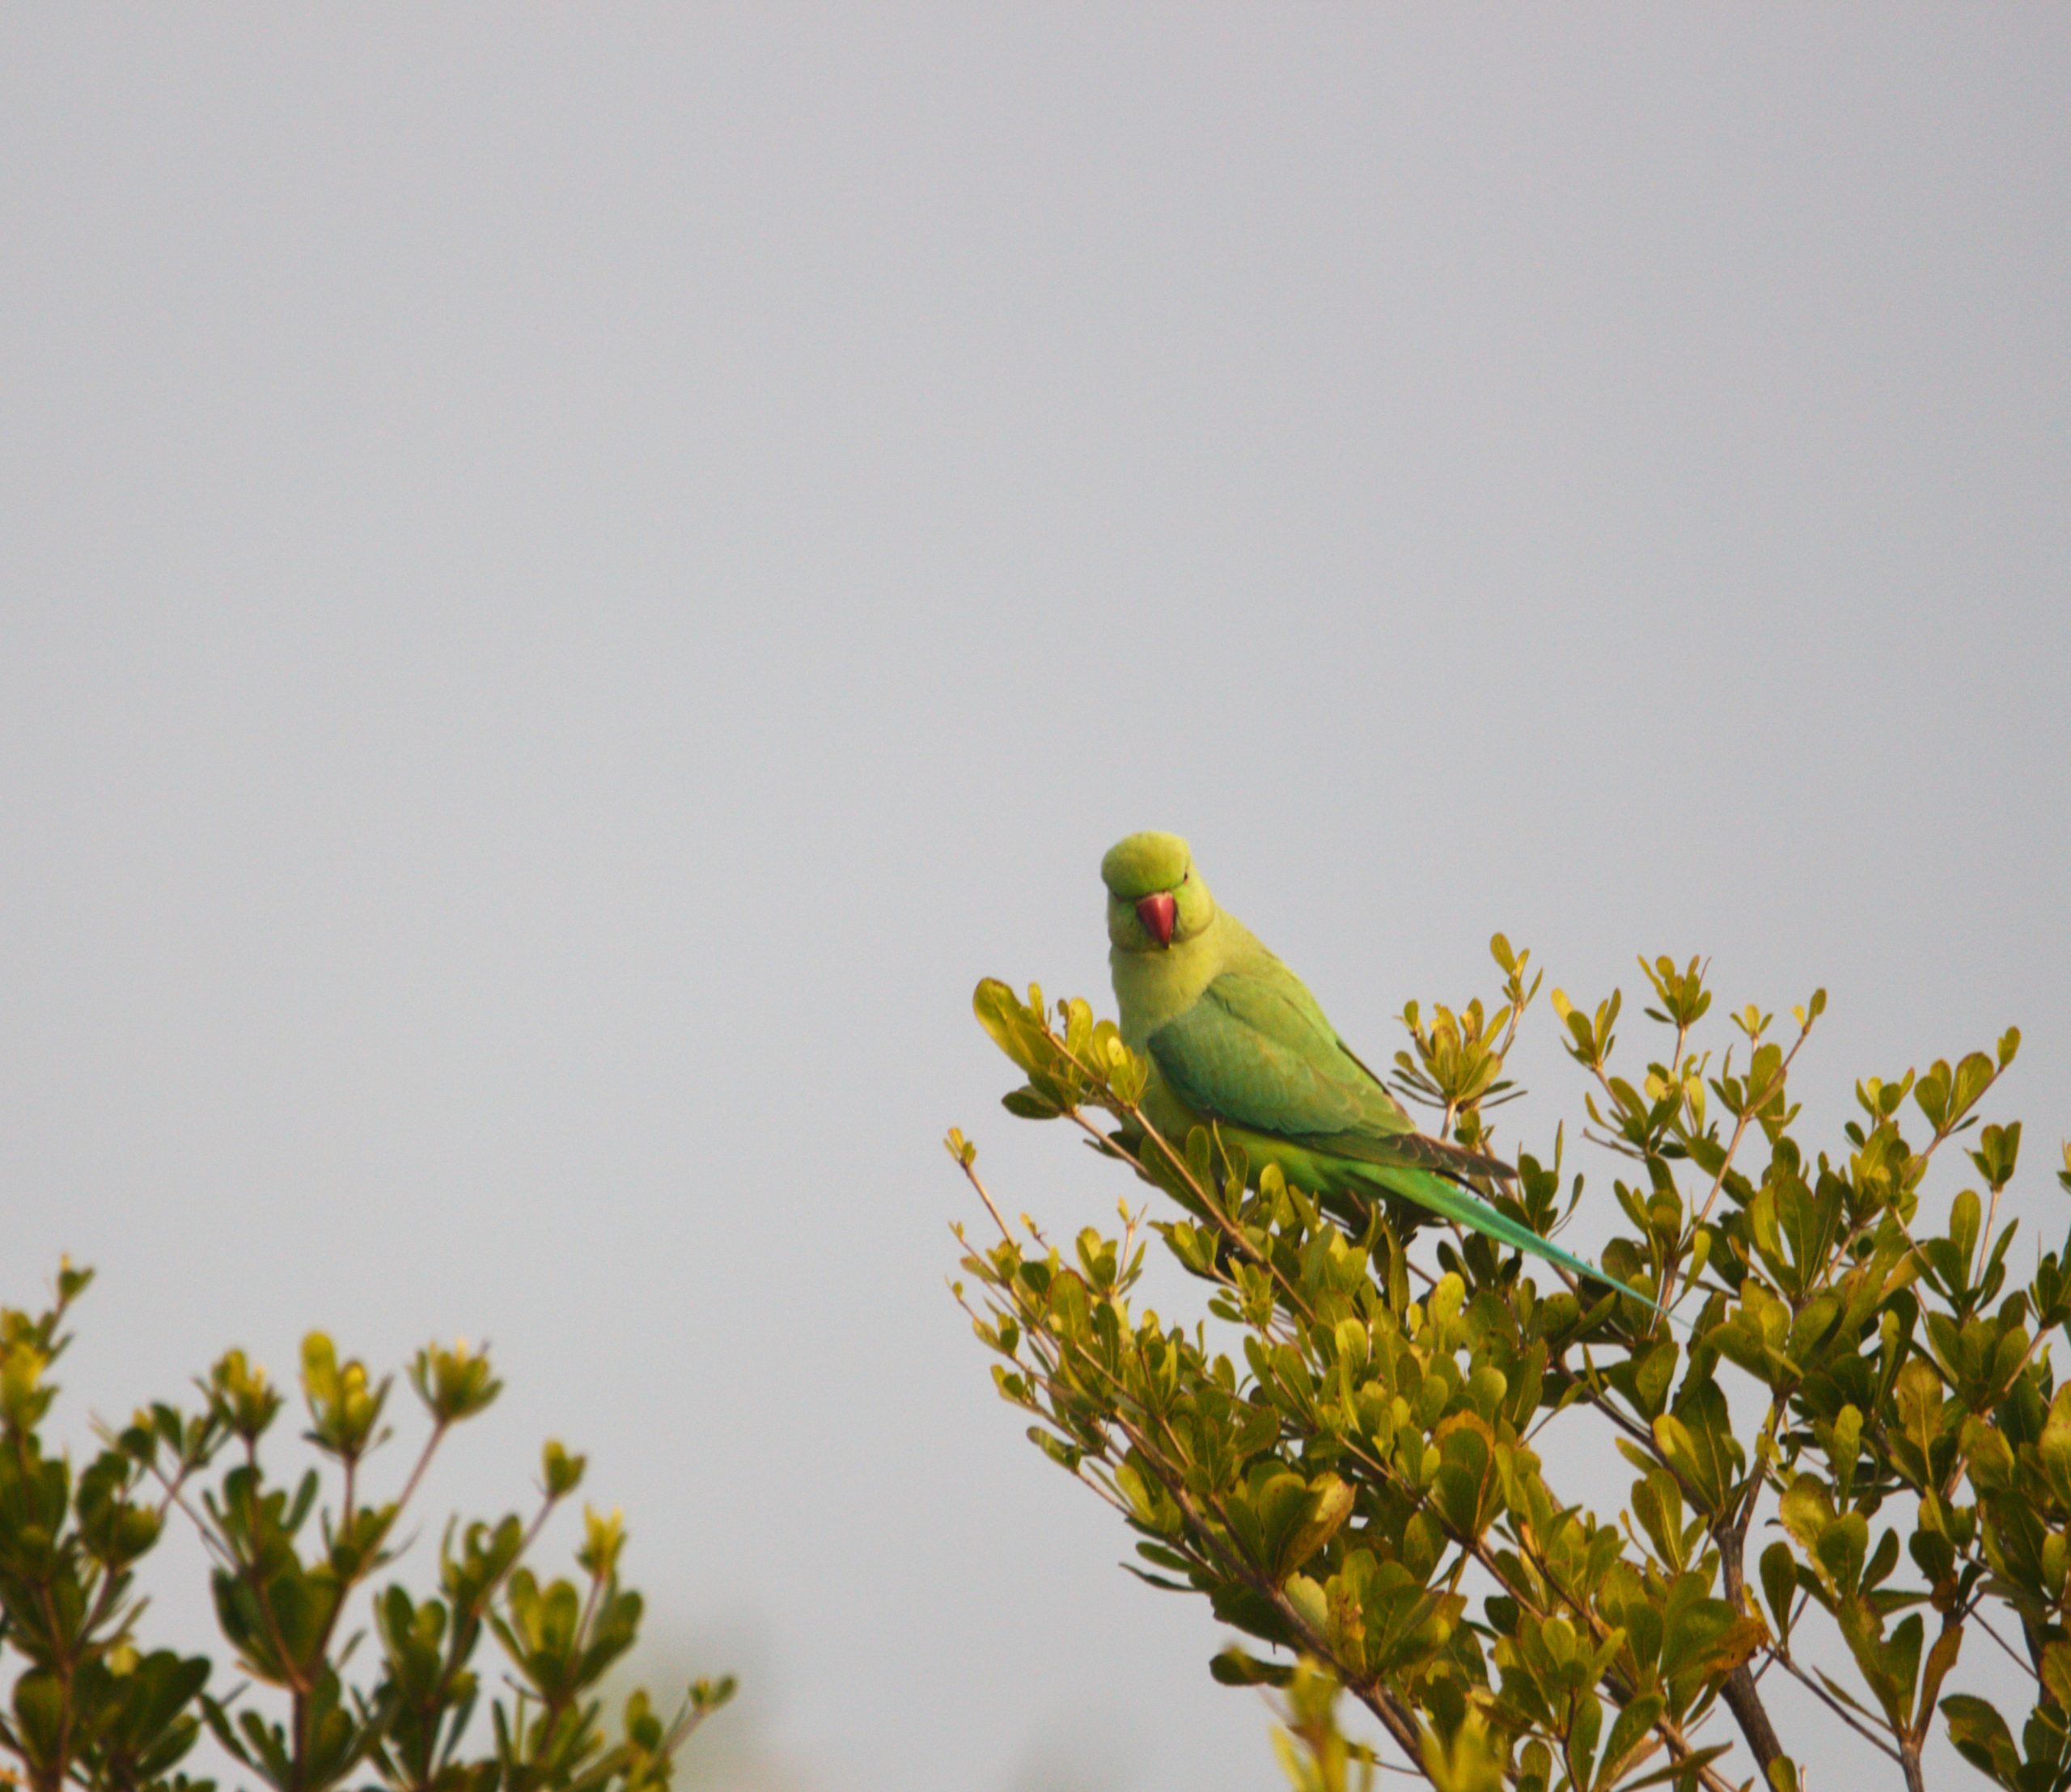 A parrot on a tree